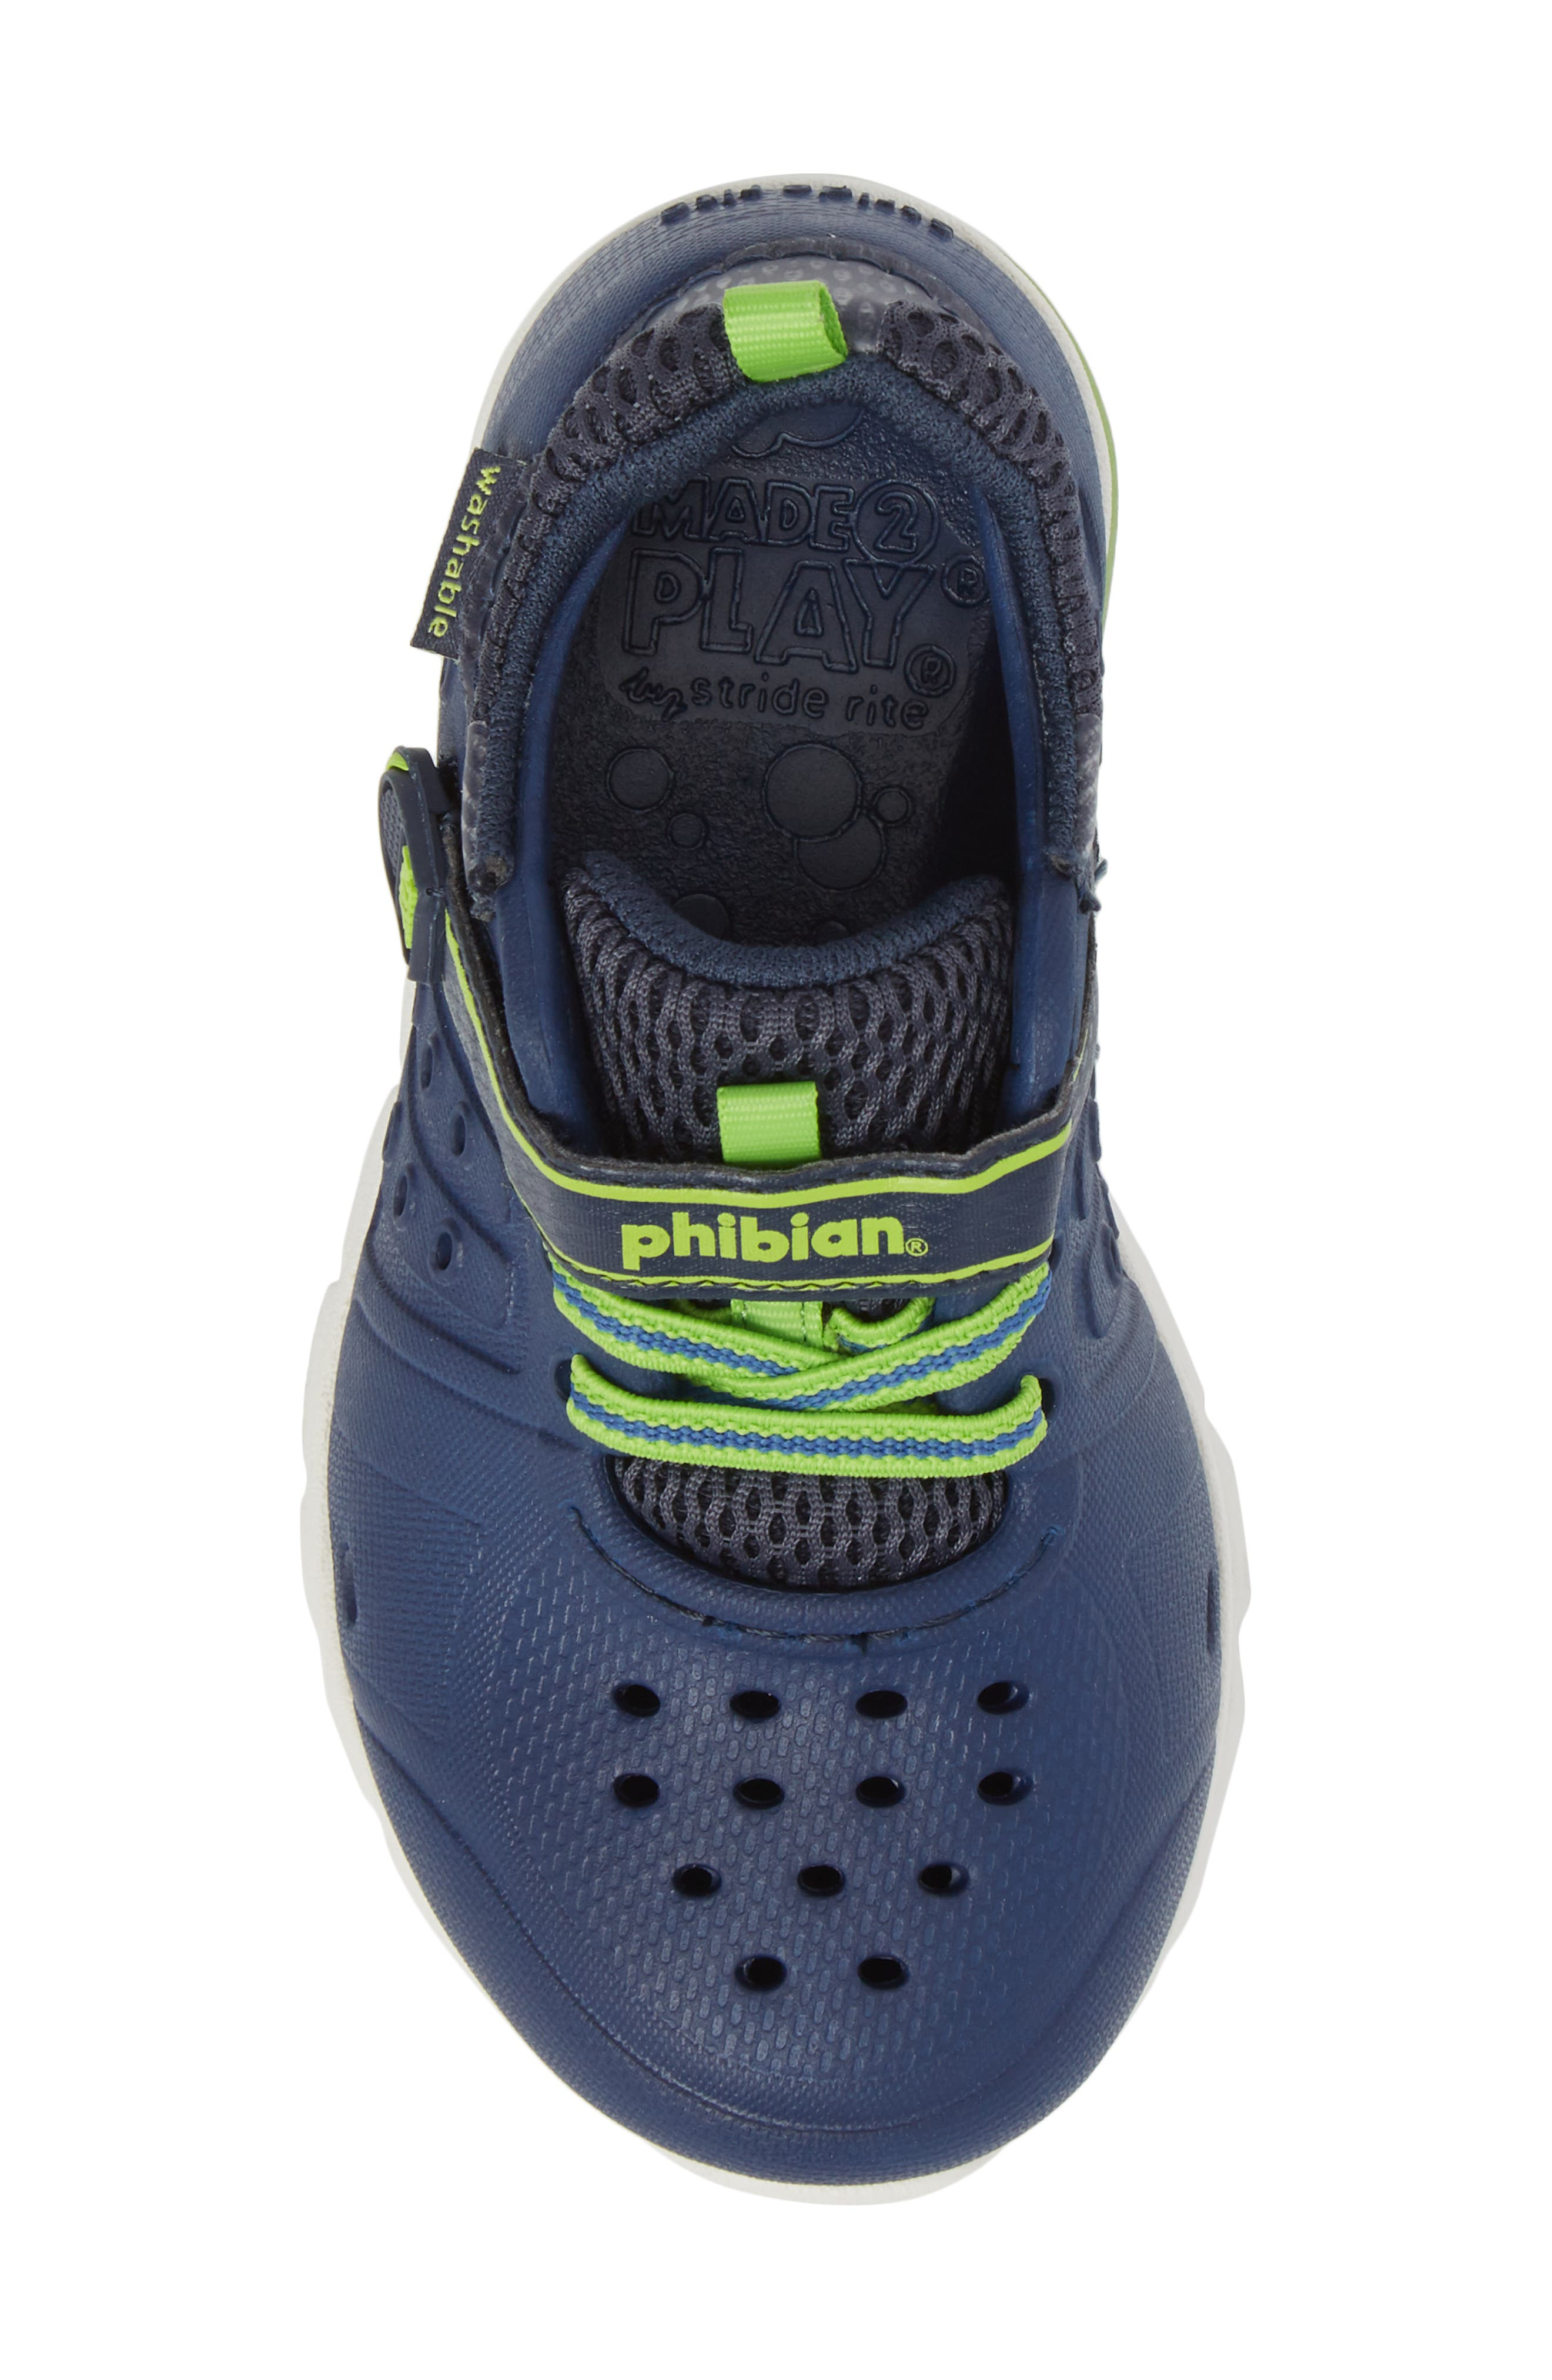 Made2Play<sup>®</sup> Phibian Light-Up Sneaker,                             Alternate thumbnail 5, color,                             NAVY